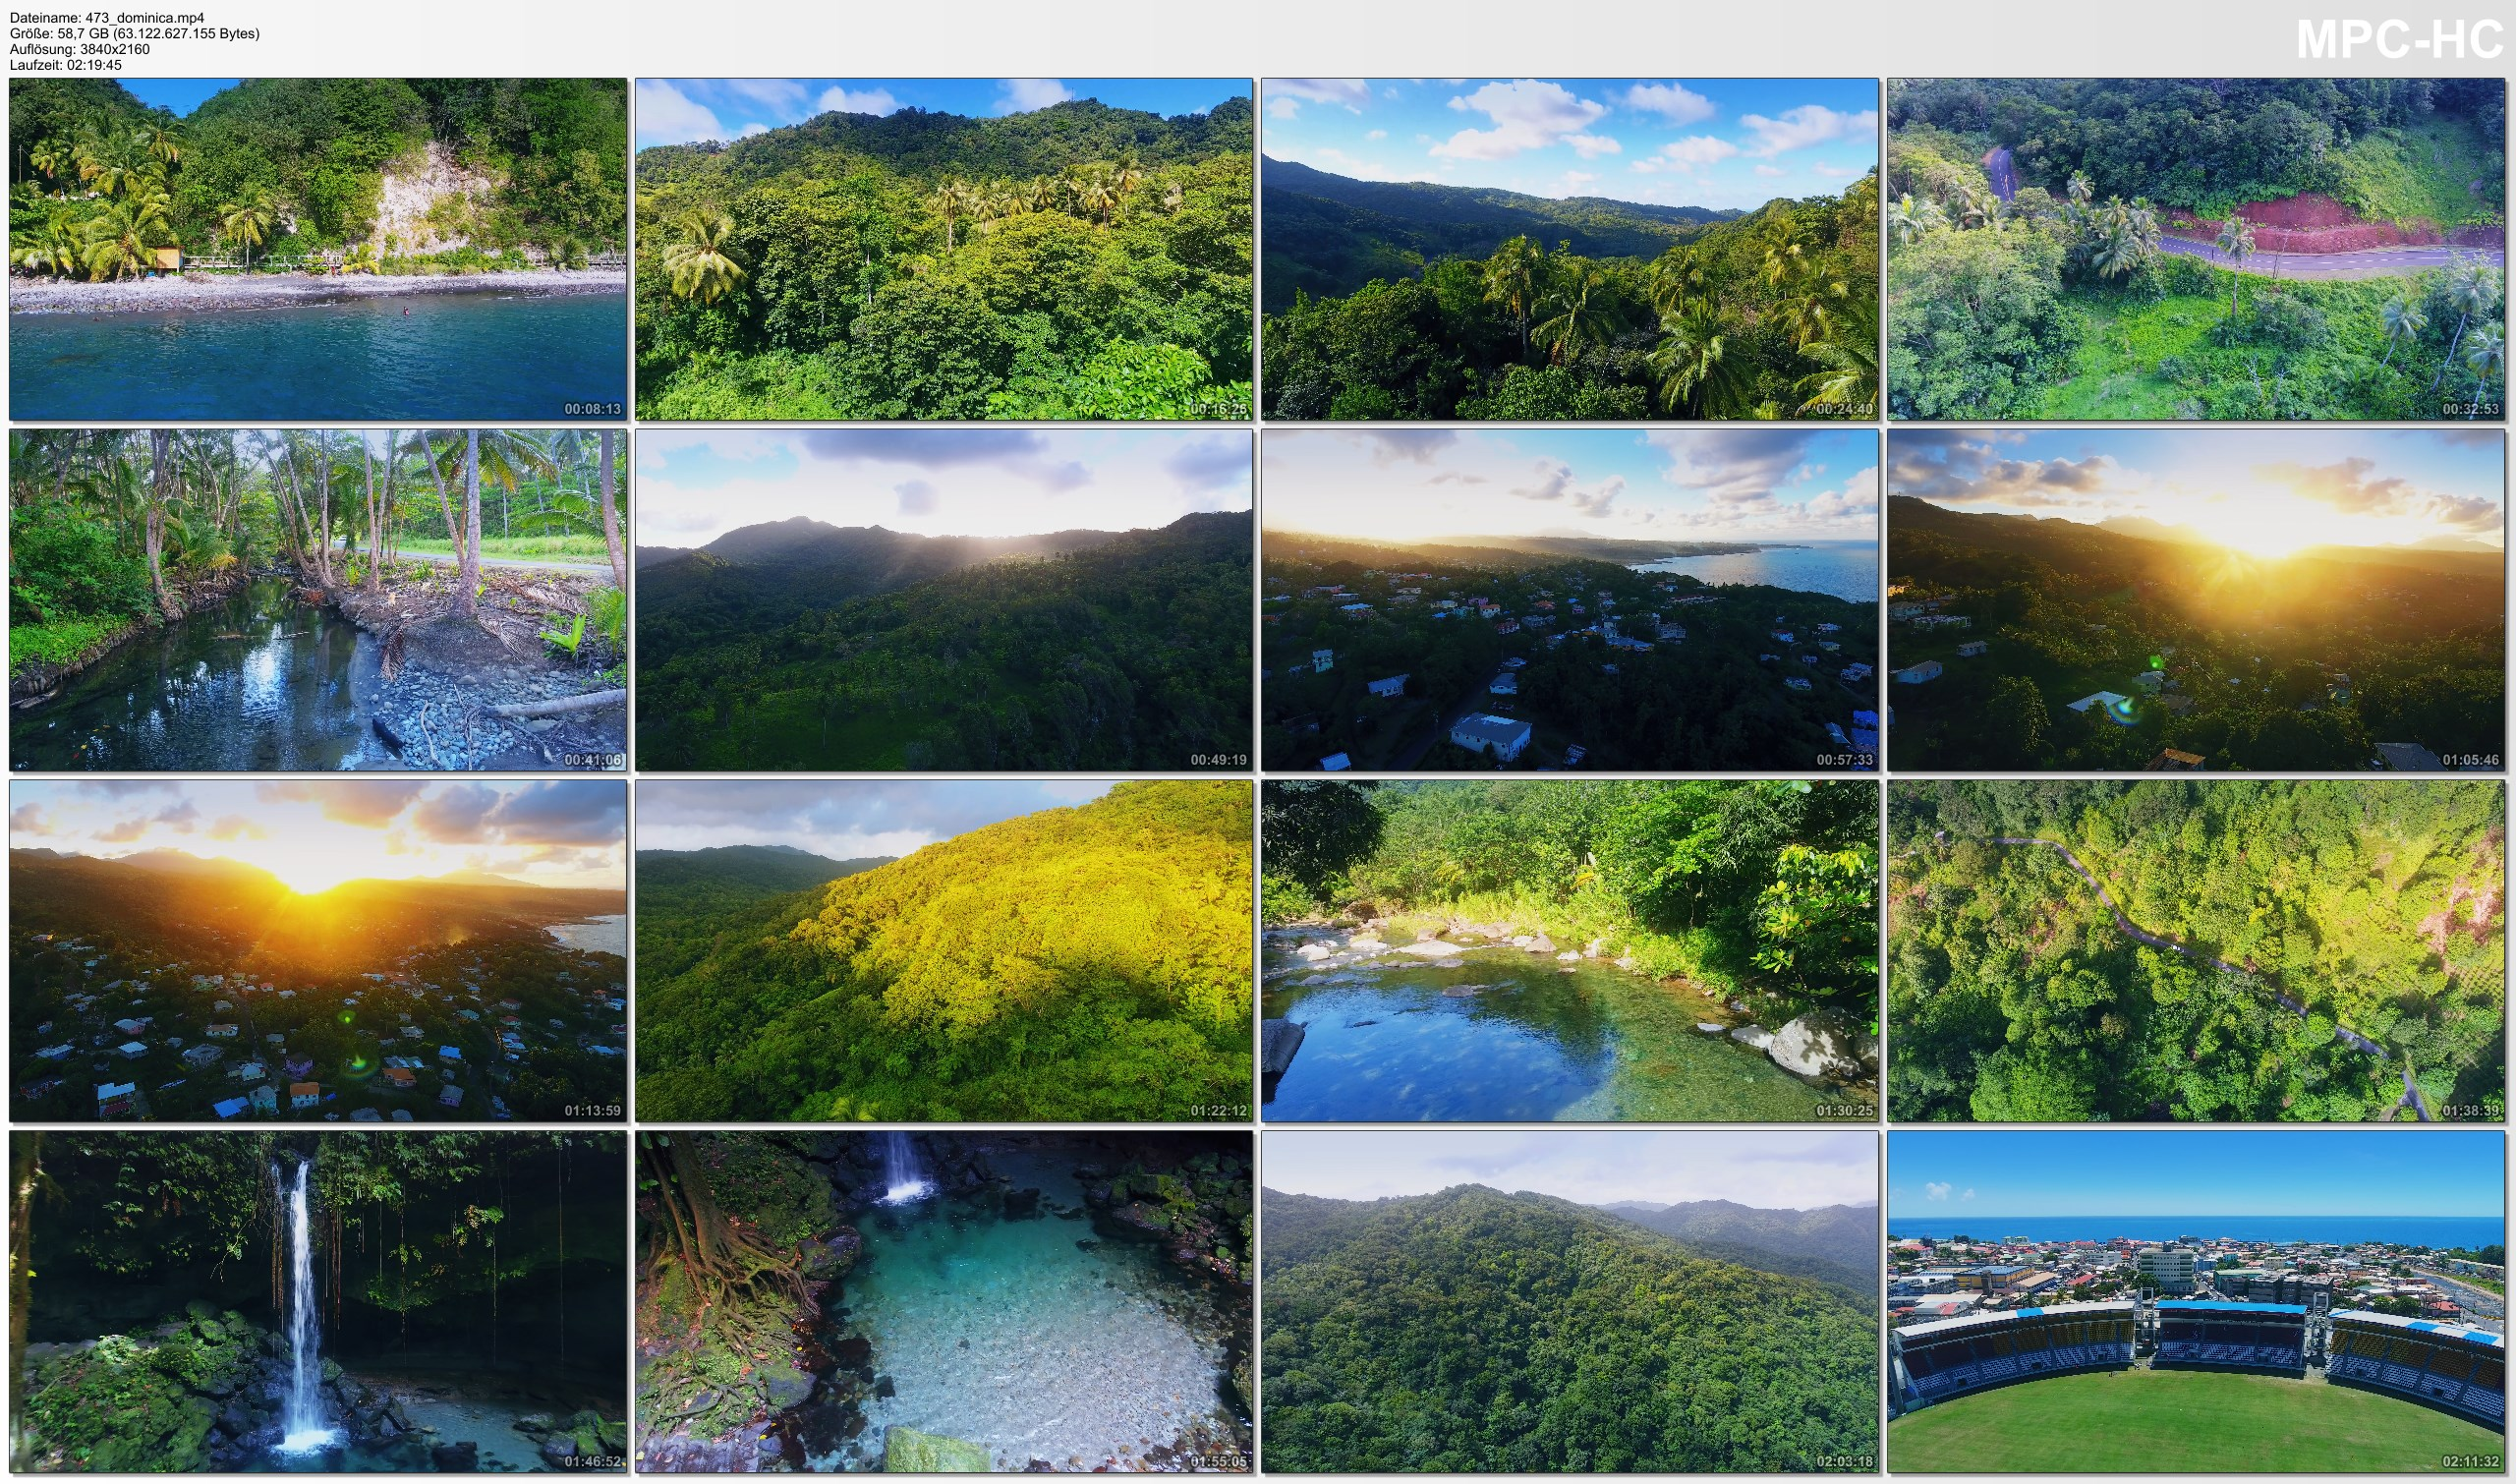 Drone Pictures from Video 【4K】Drone RAW Footage | This is DOMINICA 2020 | Caribbean | Roseau and More | UltraHD Stock Video